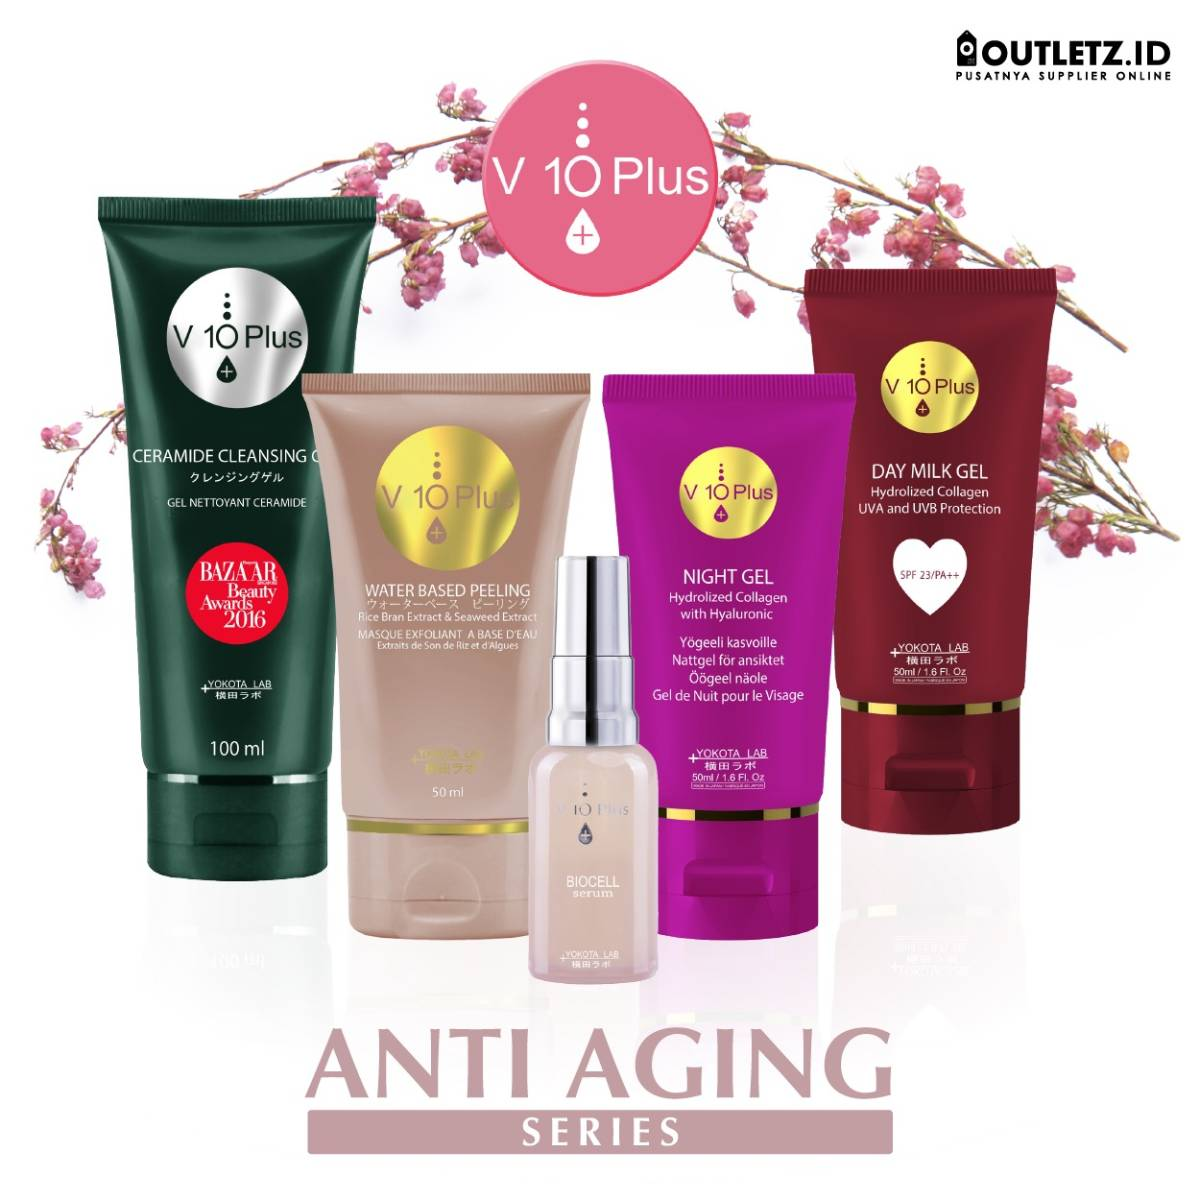 V10 Plus Anti Aging Series